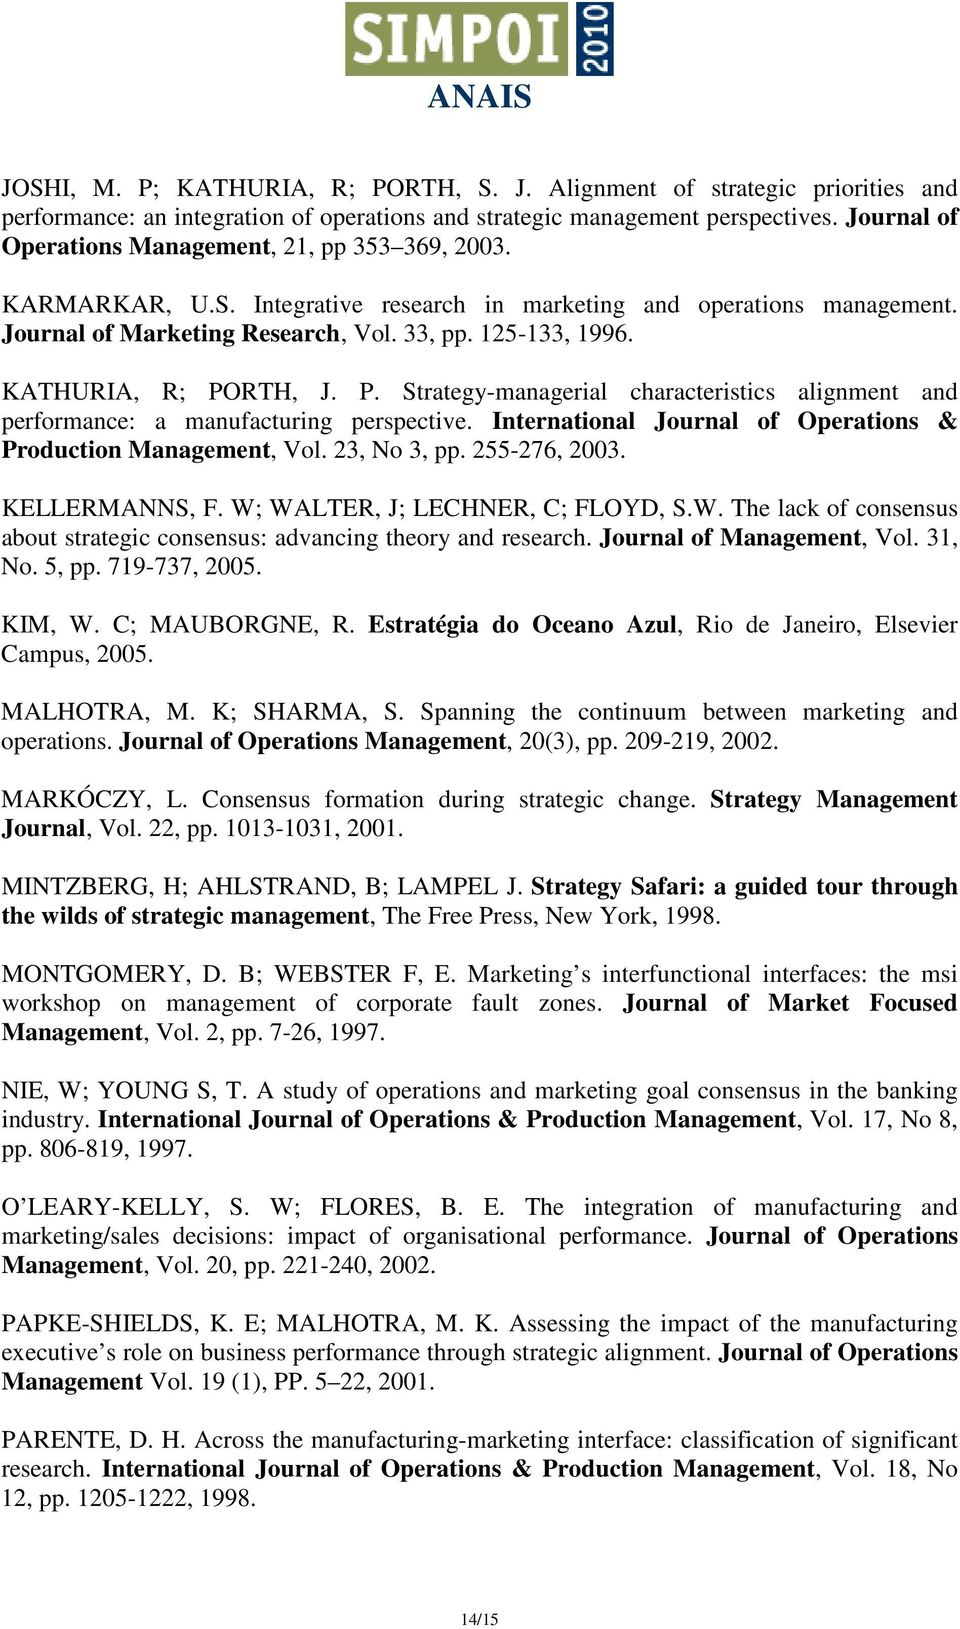 KATHURIA, R; PORTH, J. P. Strategy-managerial characteristics alignment and performance: a manufacturing perspective. International Journal of Operations & Production Management, Vol. 23, No 3, pp.